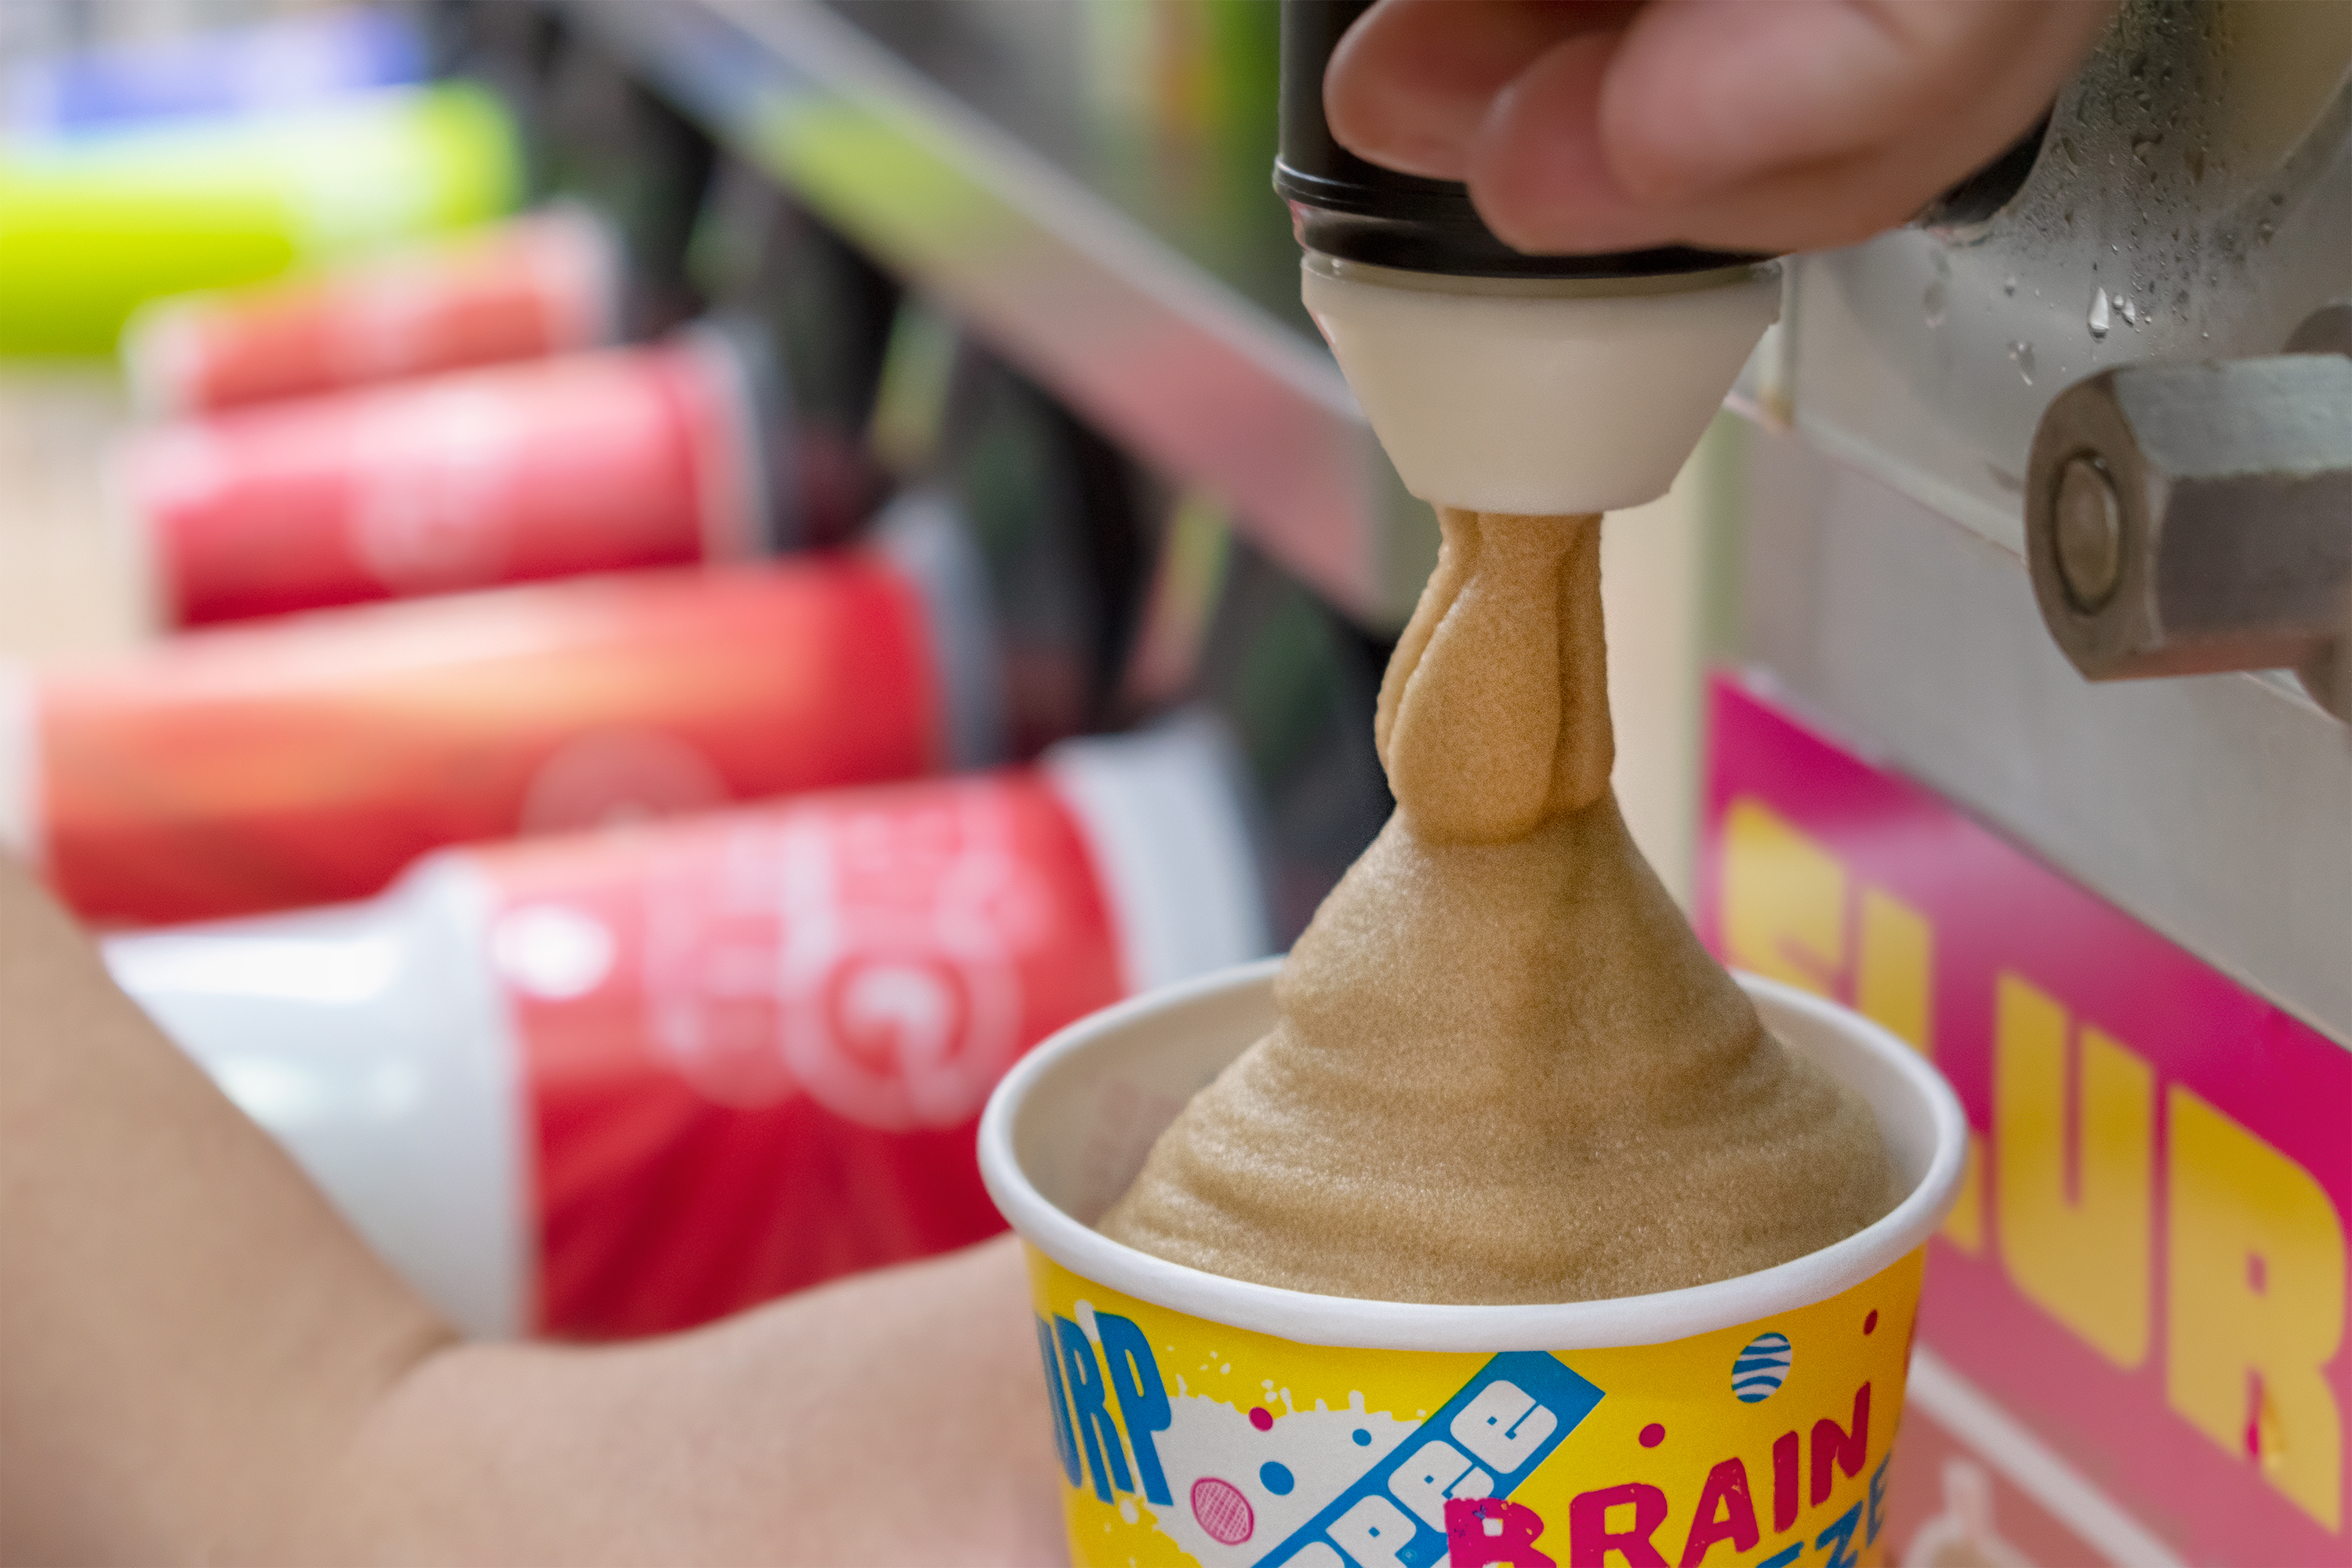 7-Eleven Lab Store Experiments With Health Food and Organic Slurpees